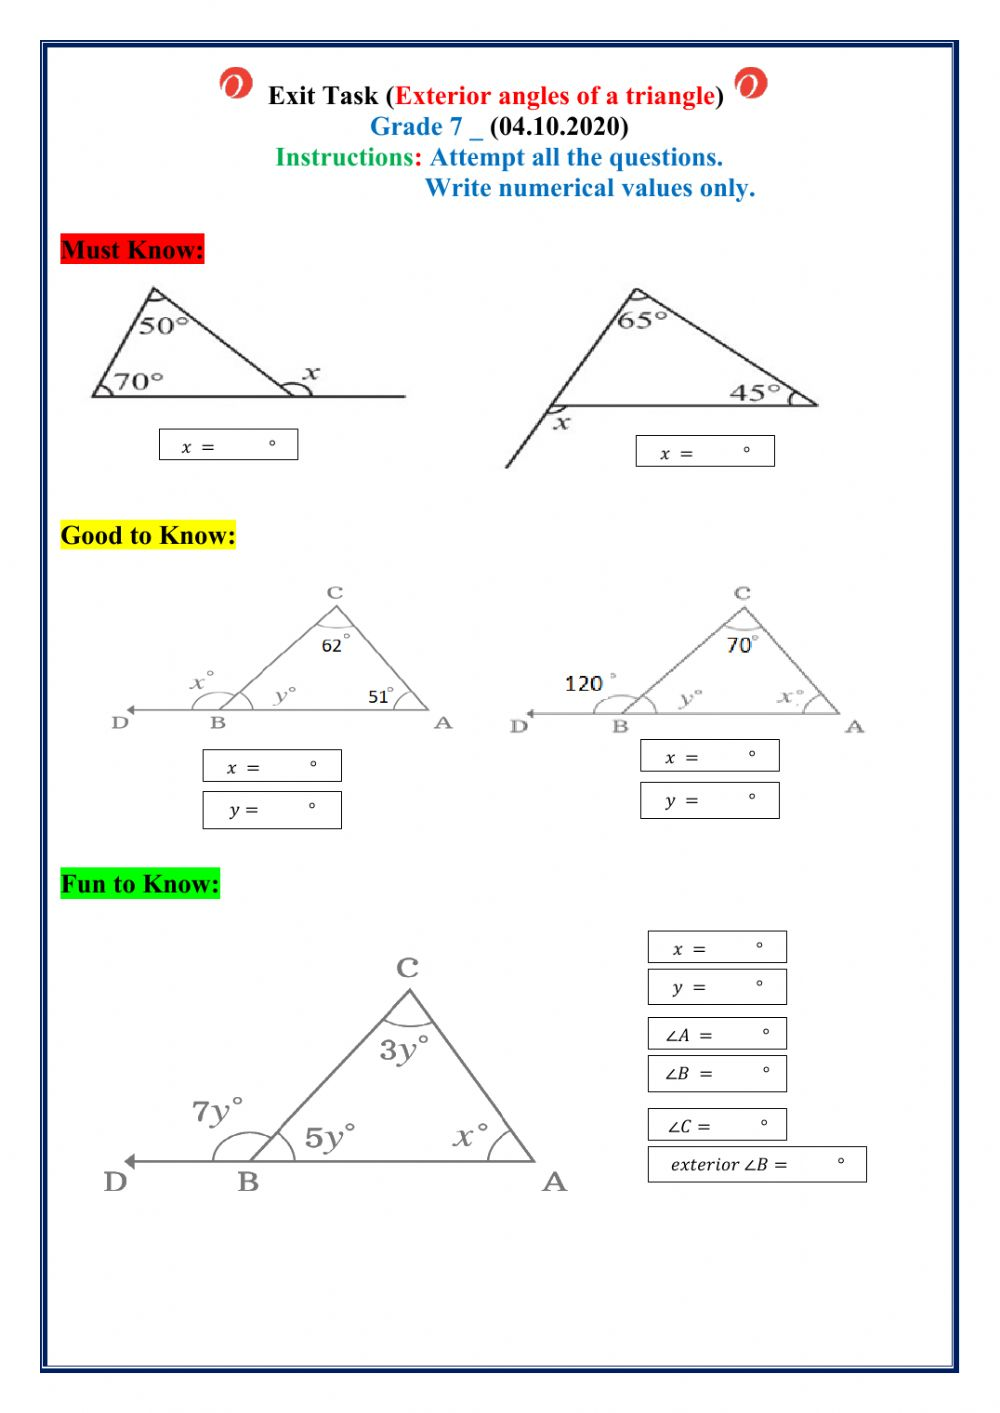 hight resolution of Exterior angles of a triangle interactive worksheet